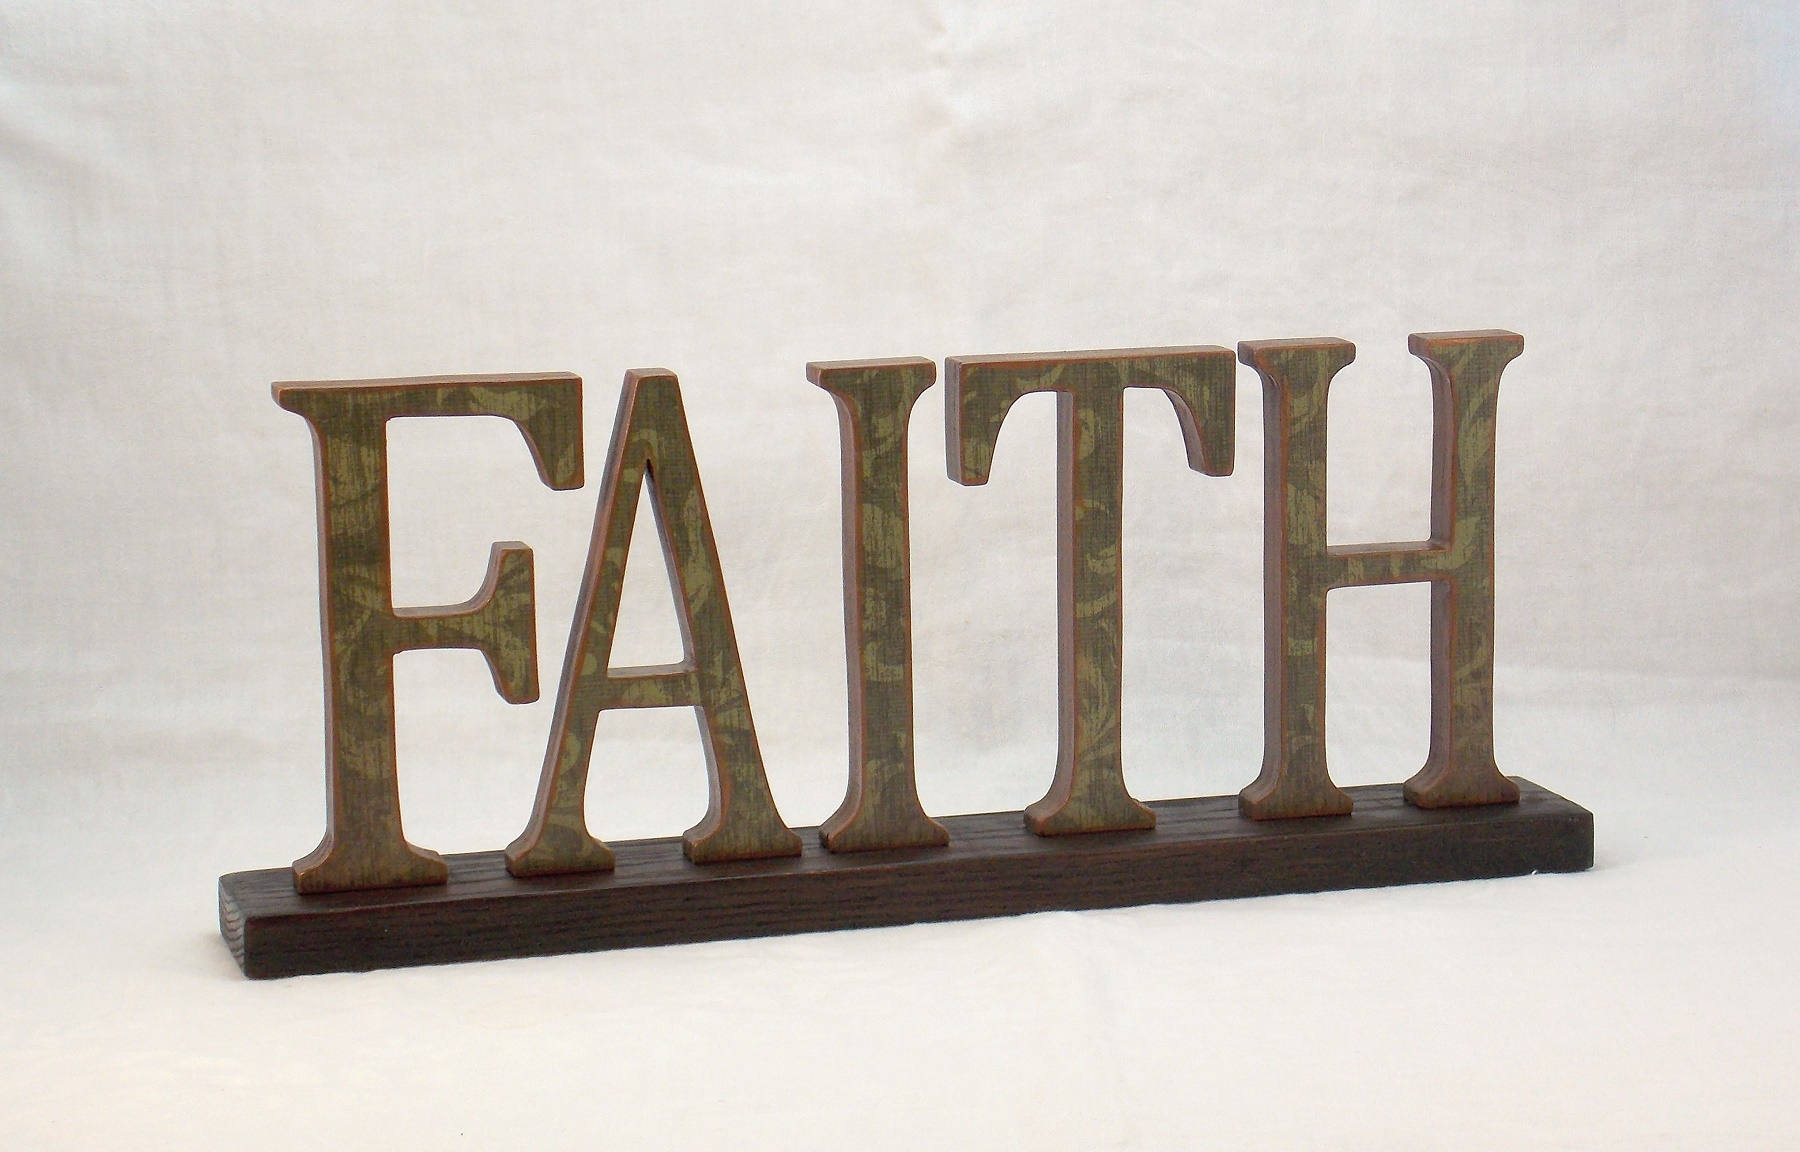 Make Words Of Faith Using The Letters Of Trust